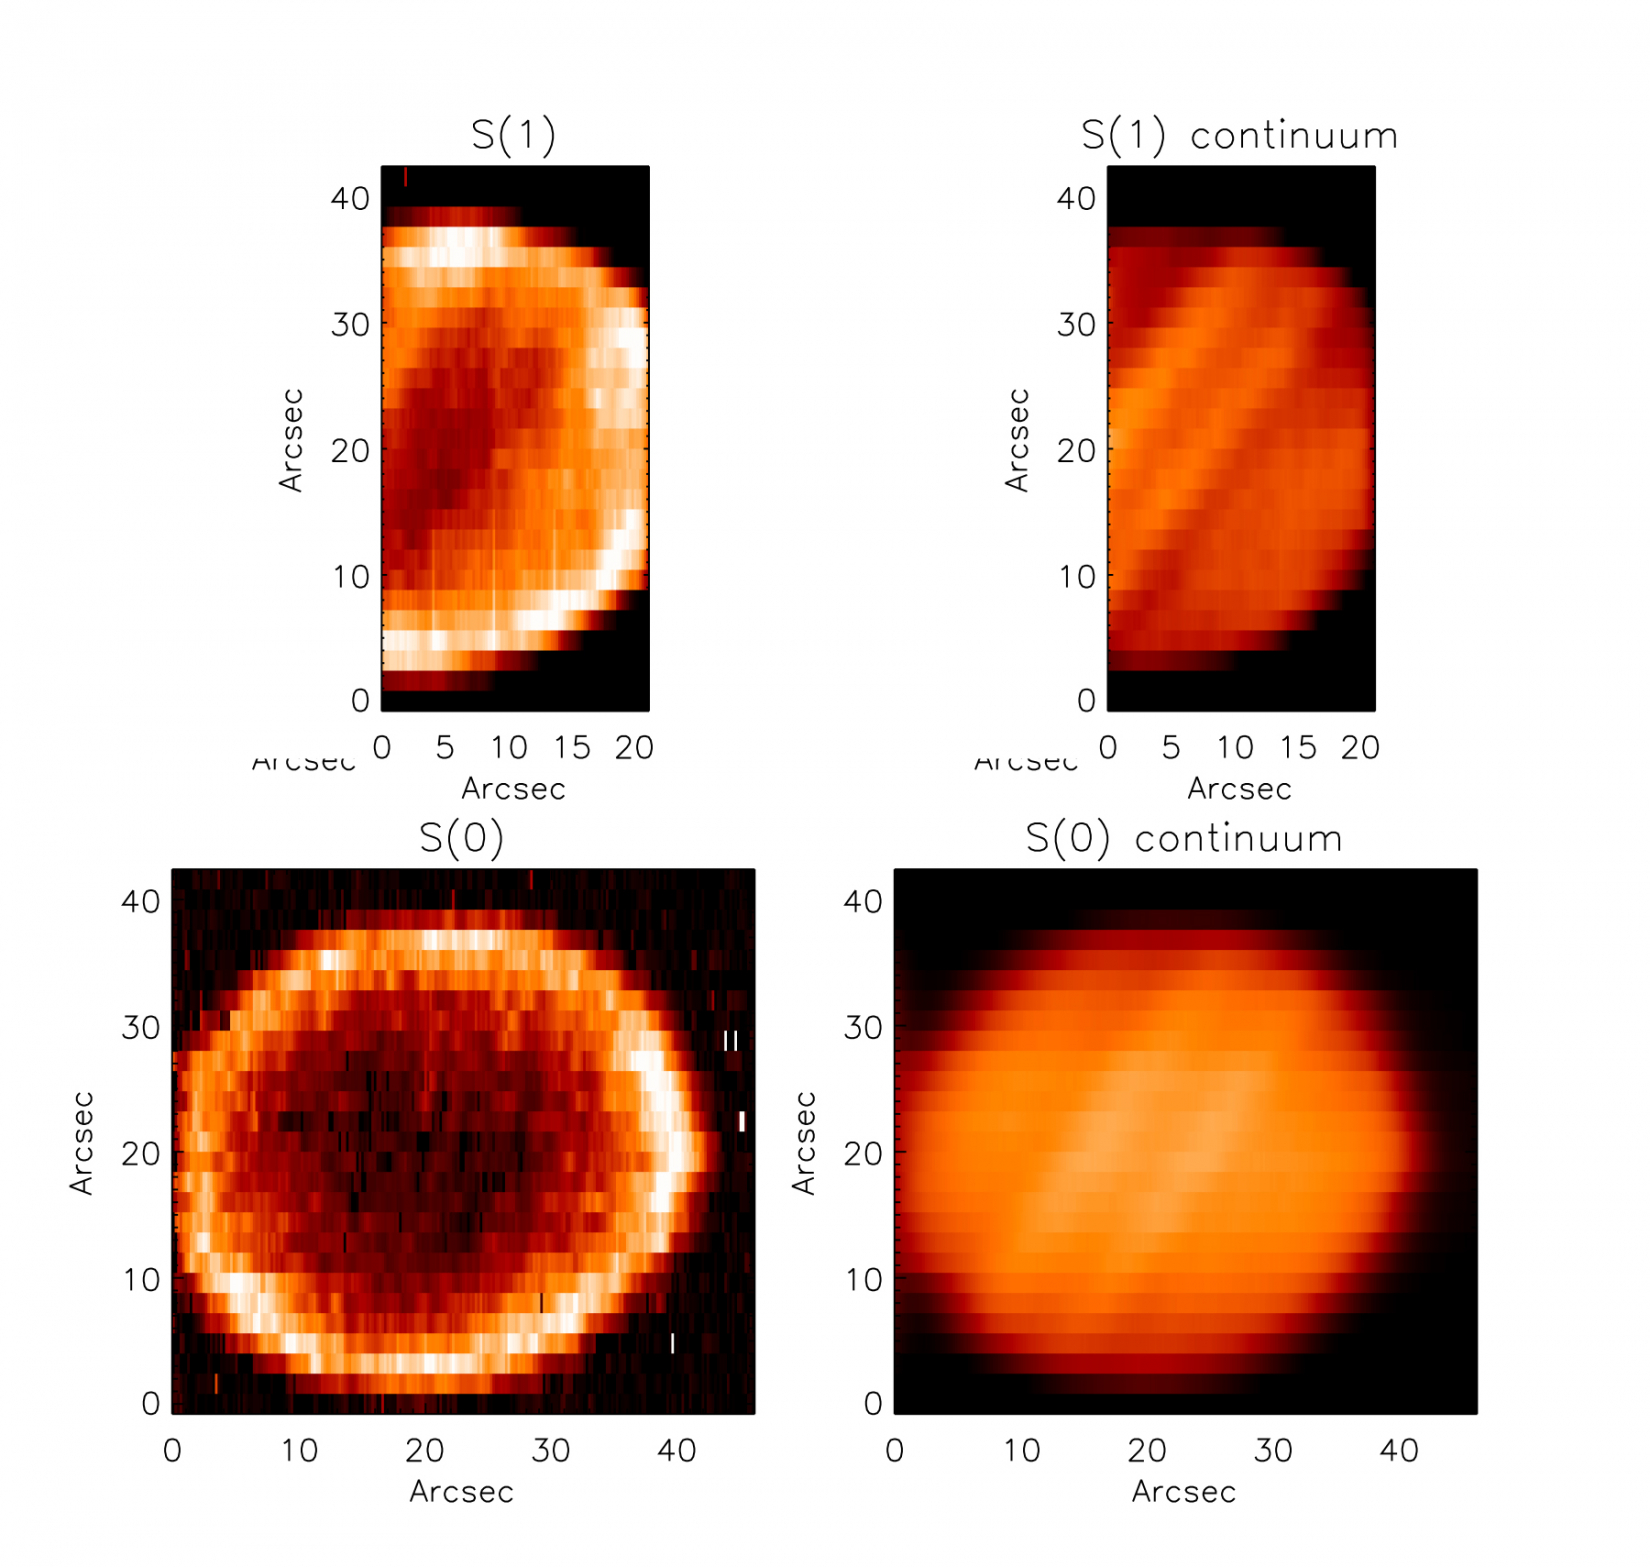 EXES spectral maps of H2 emission on Jupiter at 17.0 and 28.3 microns